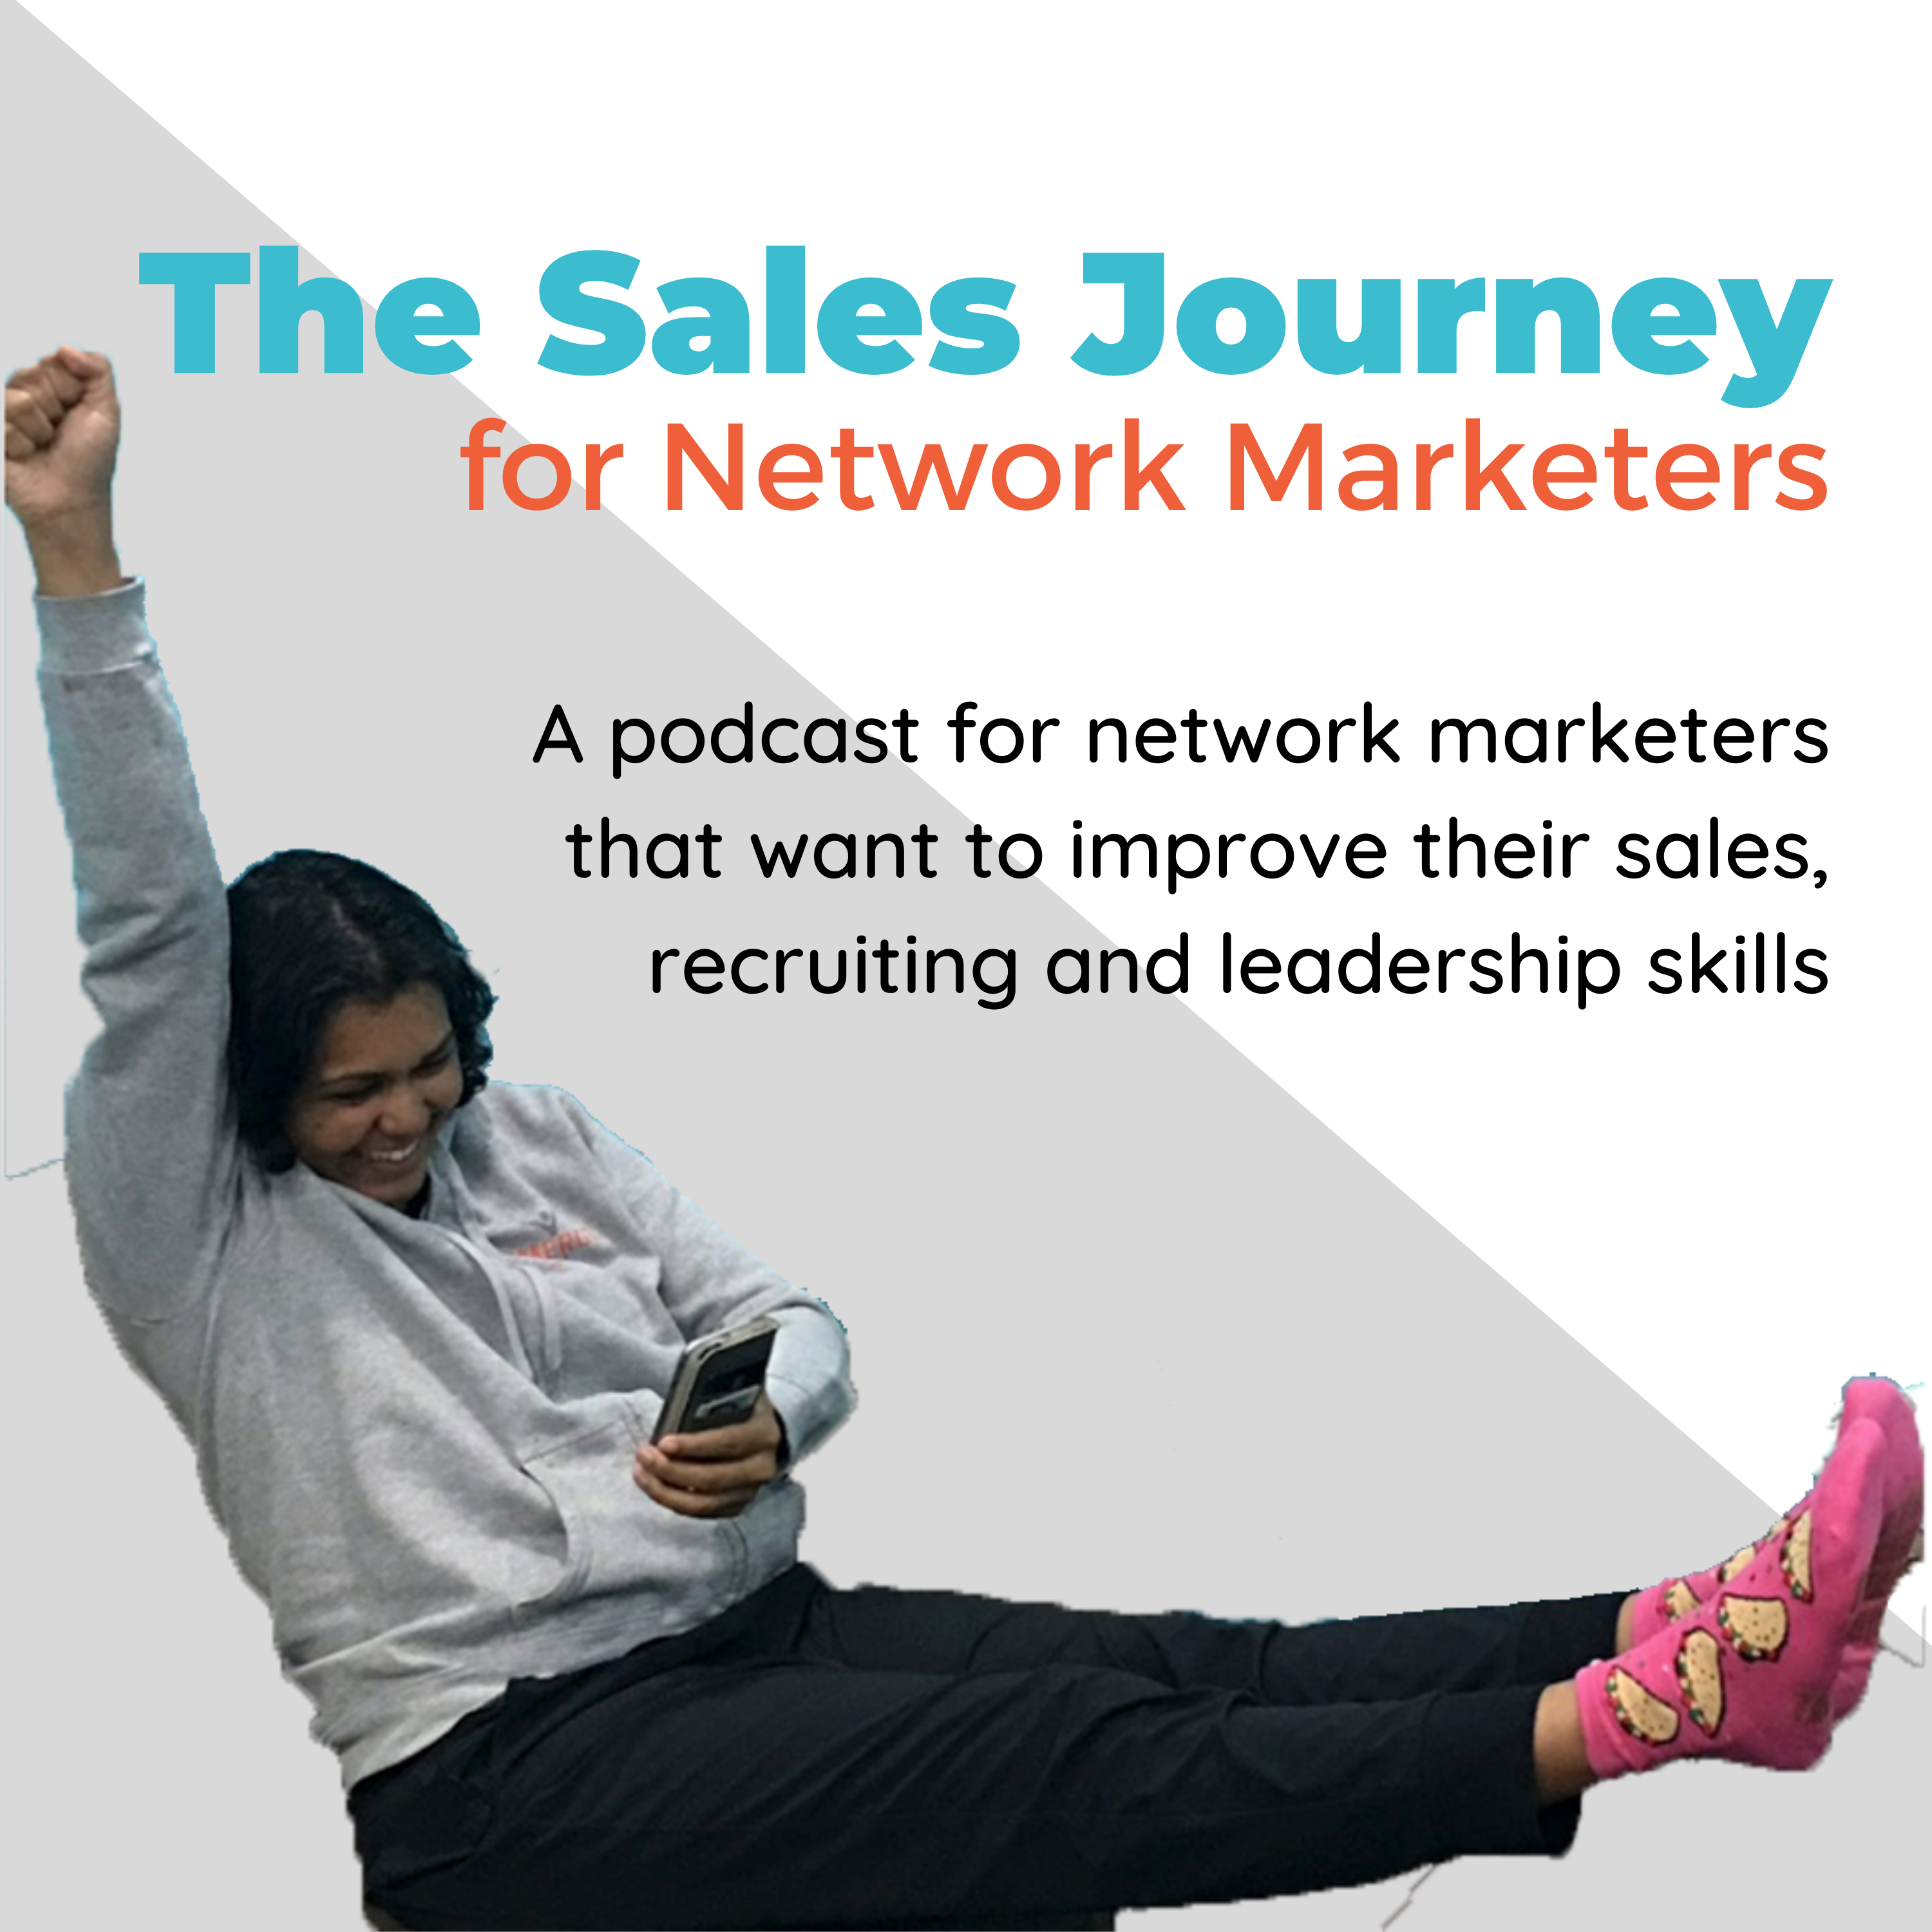 The Sales Journey Podcast for Network Marketers by Tasha Smith